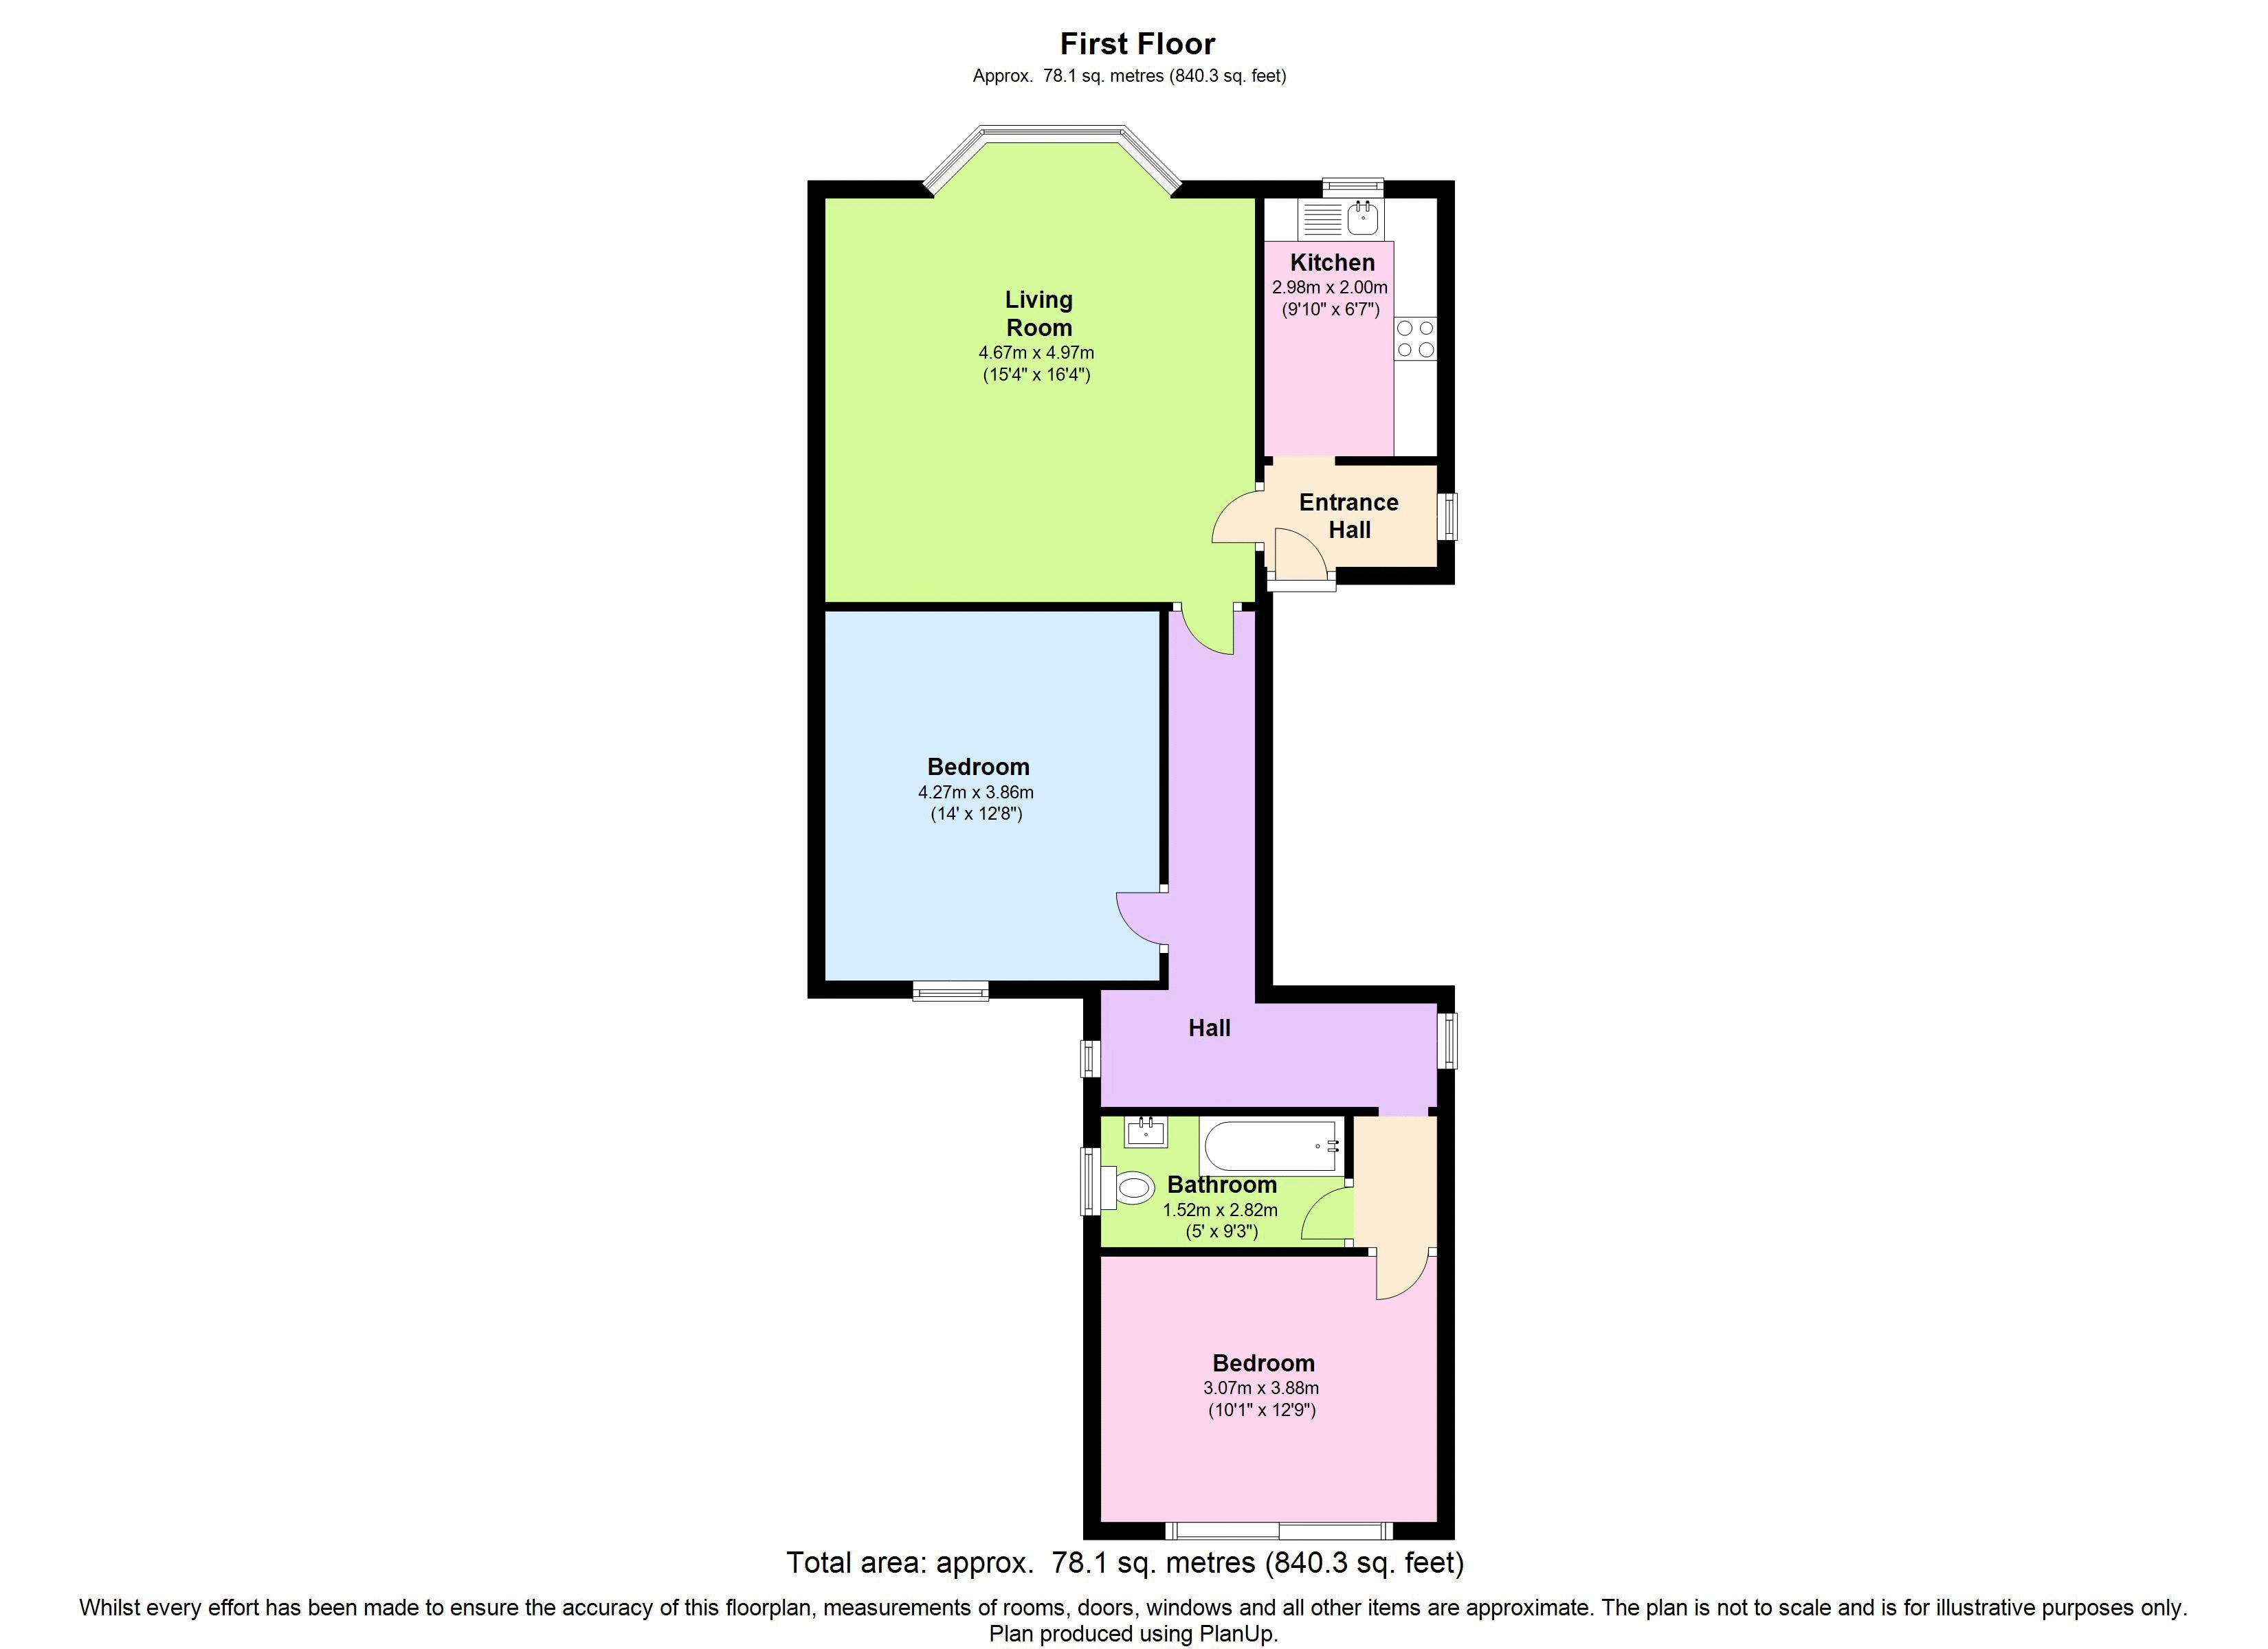 Floor plans for 22 Wilbury Gardens, Hove property for sale in Hove, Brighton by Coapt